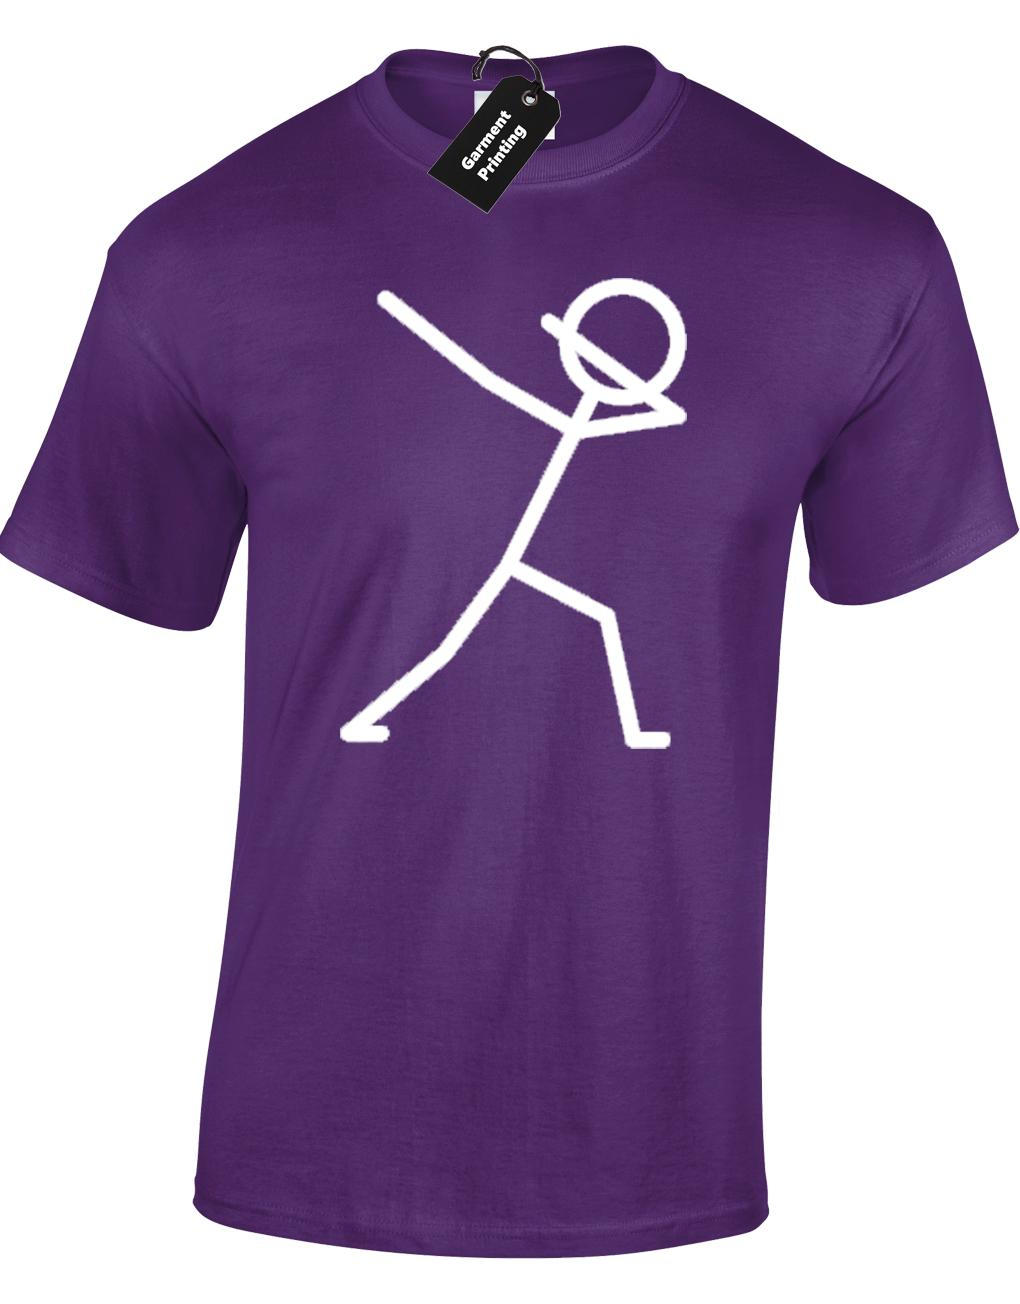 7ee0eea1 STICKMAN DABBING MENS T SHIRT FUNNY COOL DAB DANCE AWESOME HIPSTER BLOGGER  GIFT Cool Crazy T Shirt Sayings Tee Shirt Shop Online From Cls6688524, ...